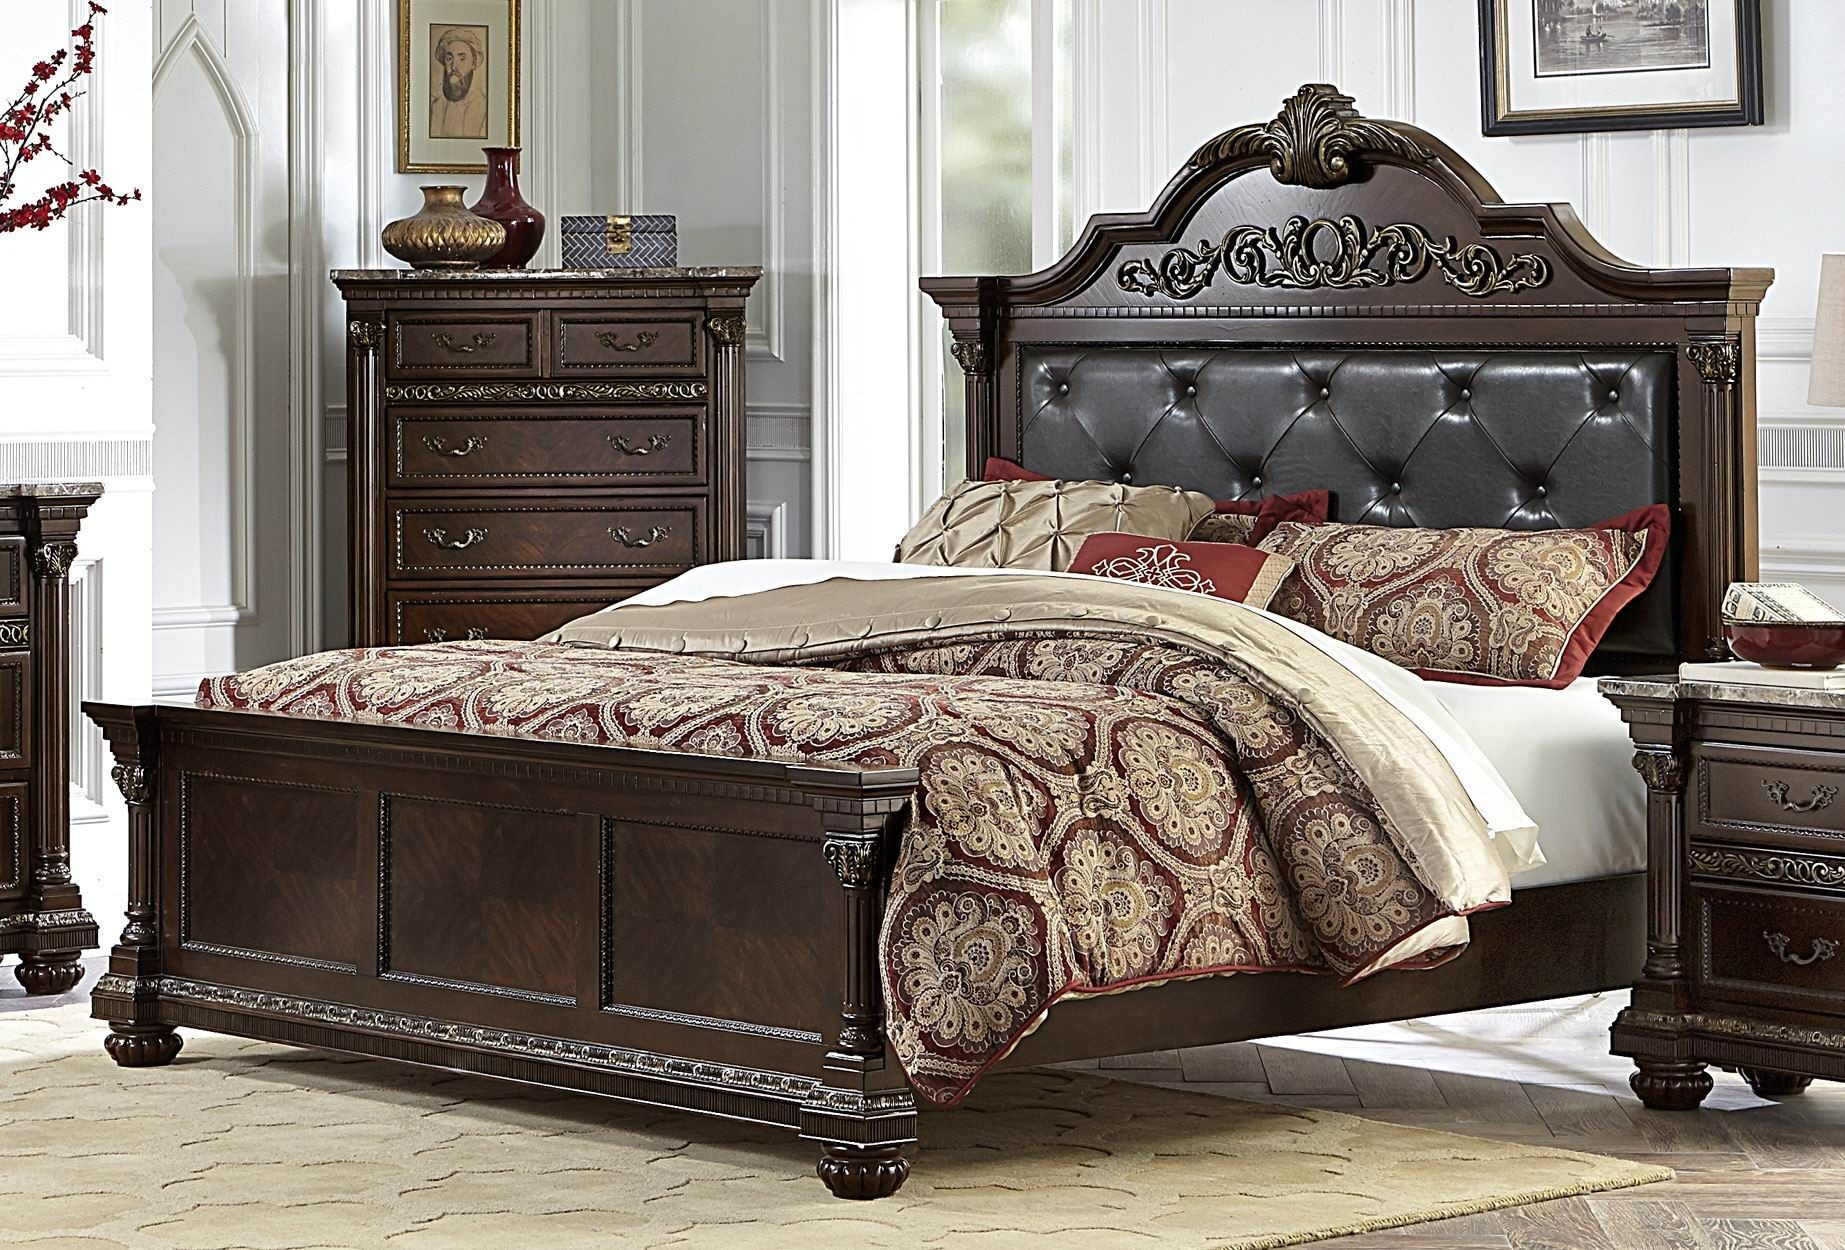 Russian Hill Warm Cherry Vinyl Cal King Panel Bed From Homelegance 1808k 1ck Coleman Furniture